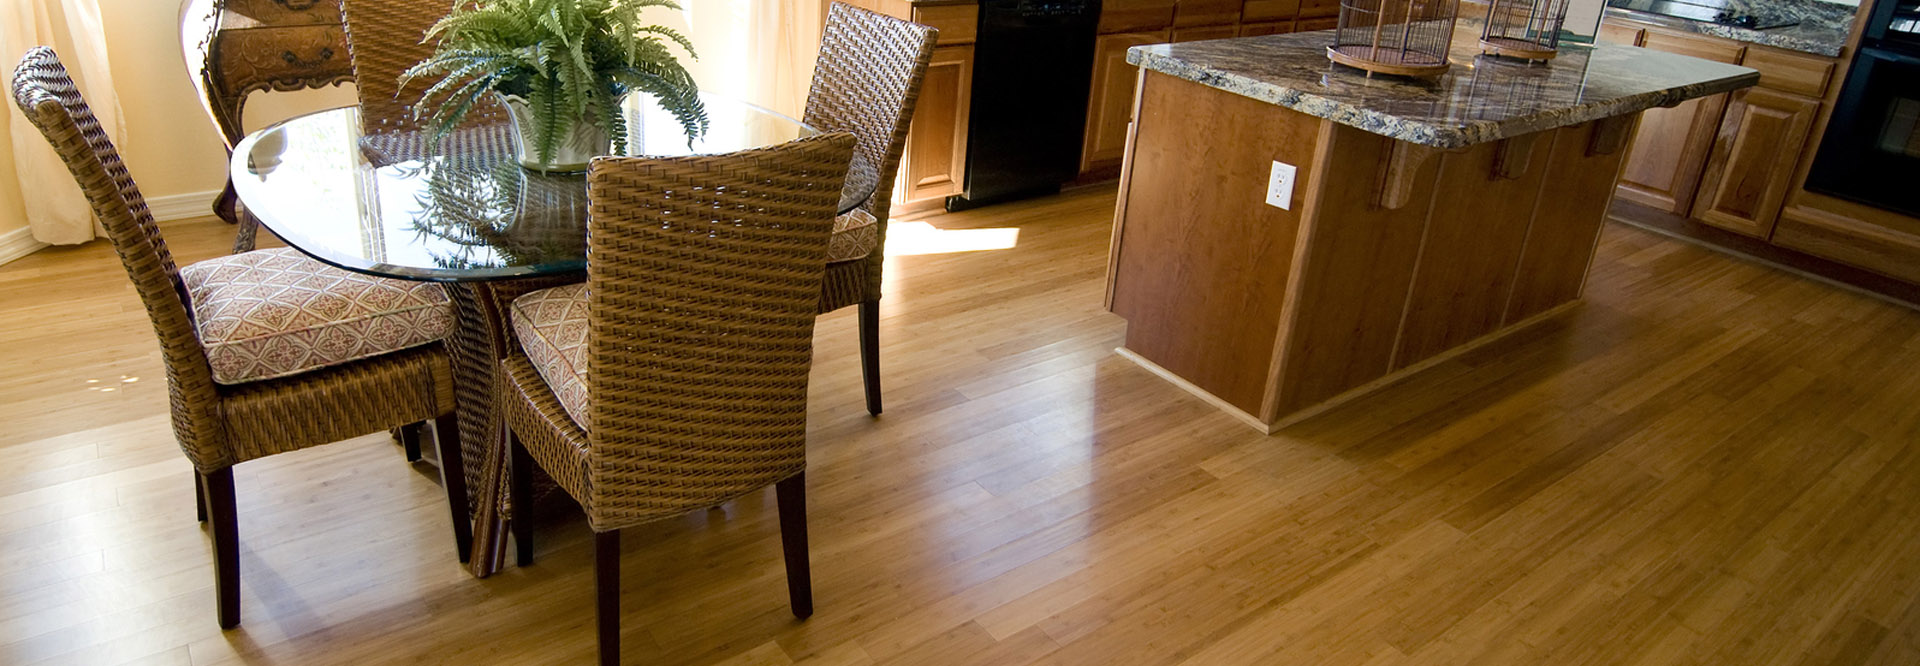 Rovins flooring chicago hardwood flooring dailygadgetfo Gallery